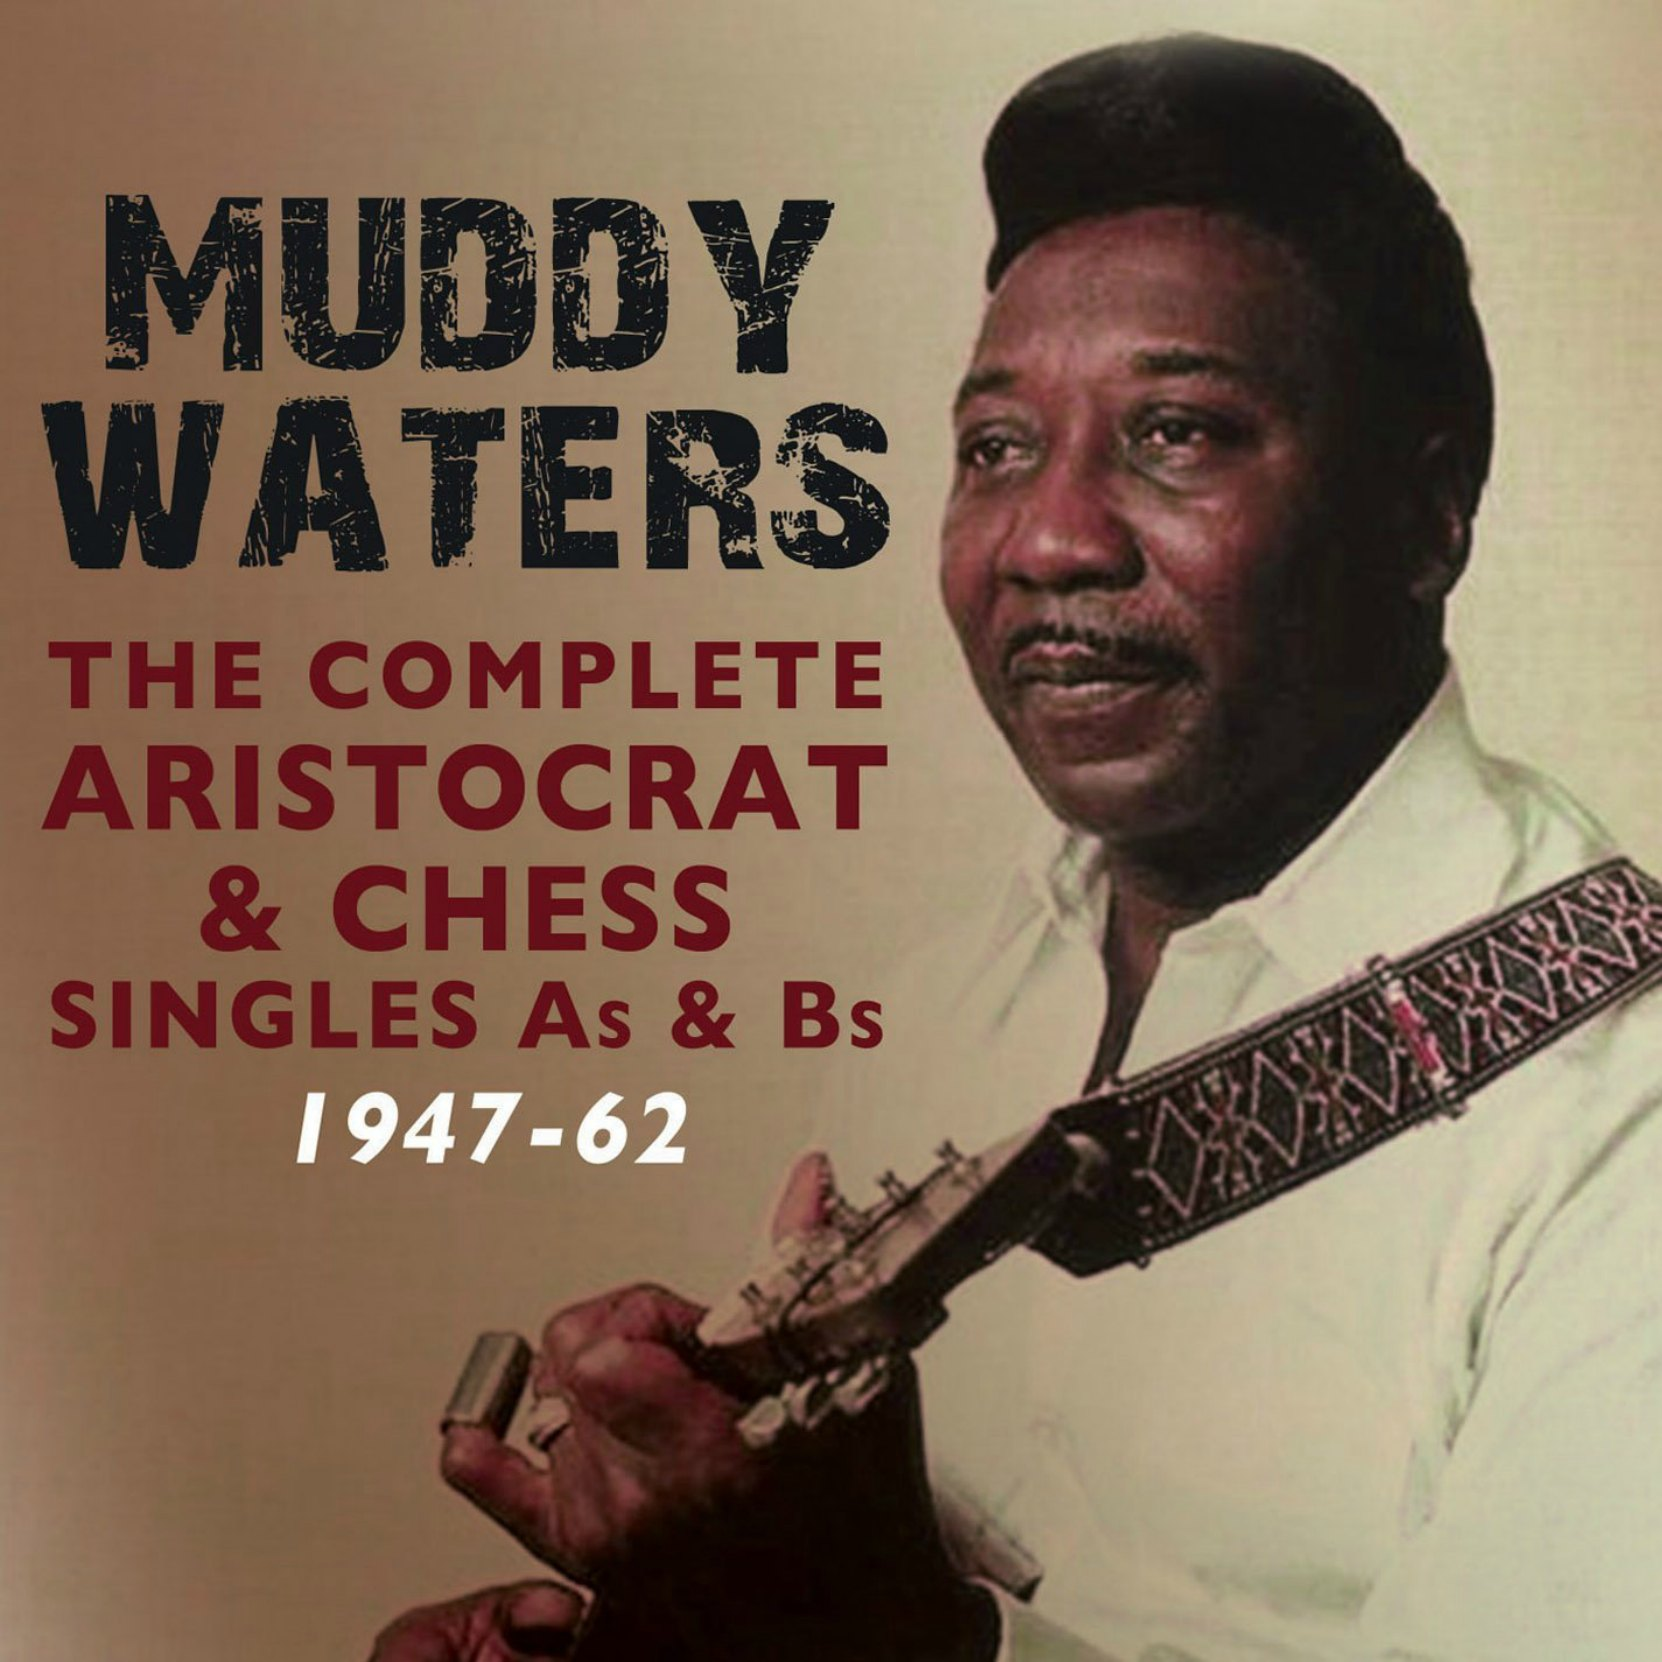 CD cover, Muddy Waters, The Complete Aristocrat & Chess Singles As & Bs 1947-62, on Acrobat Records